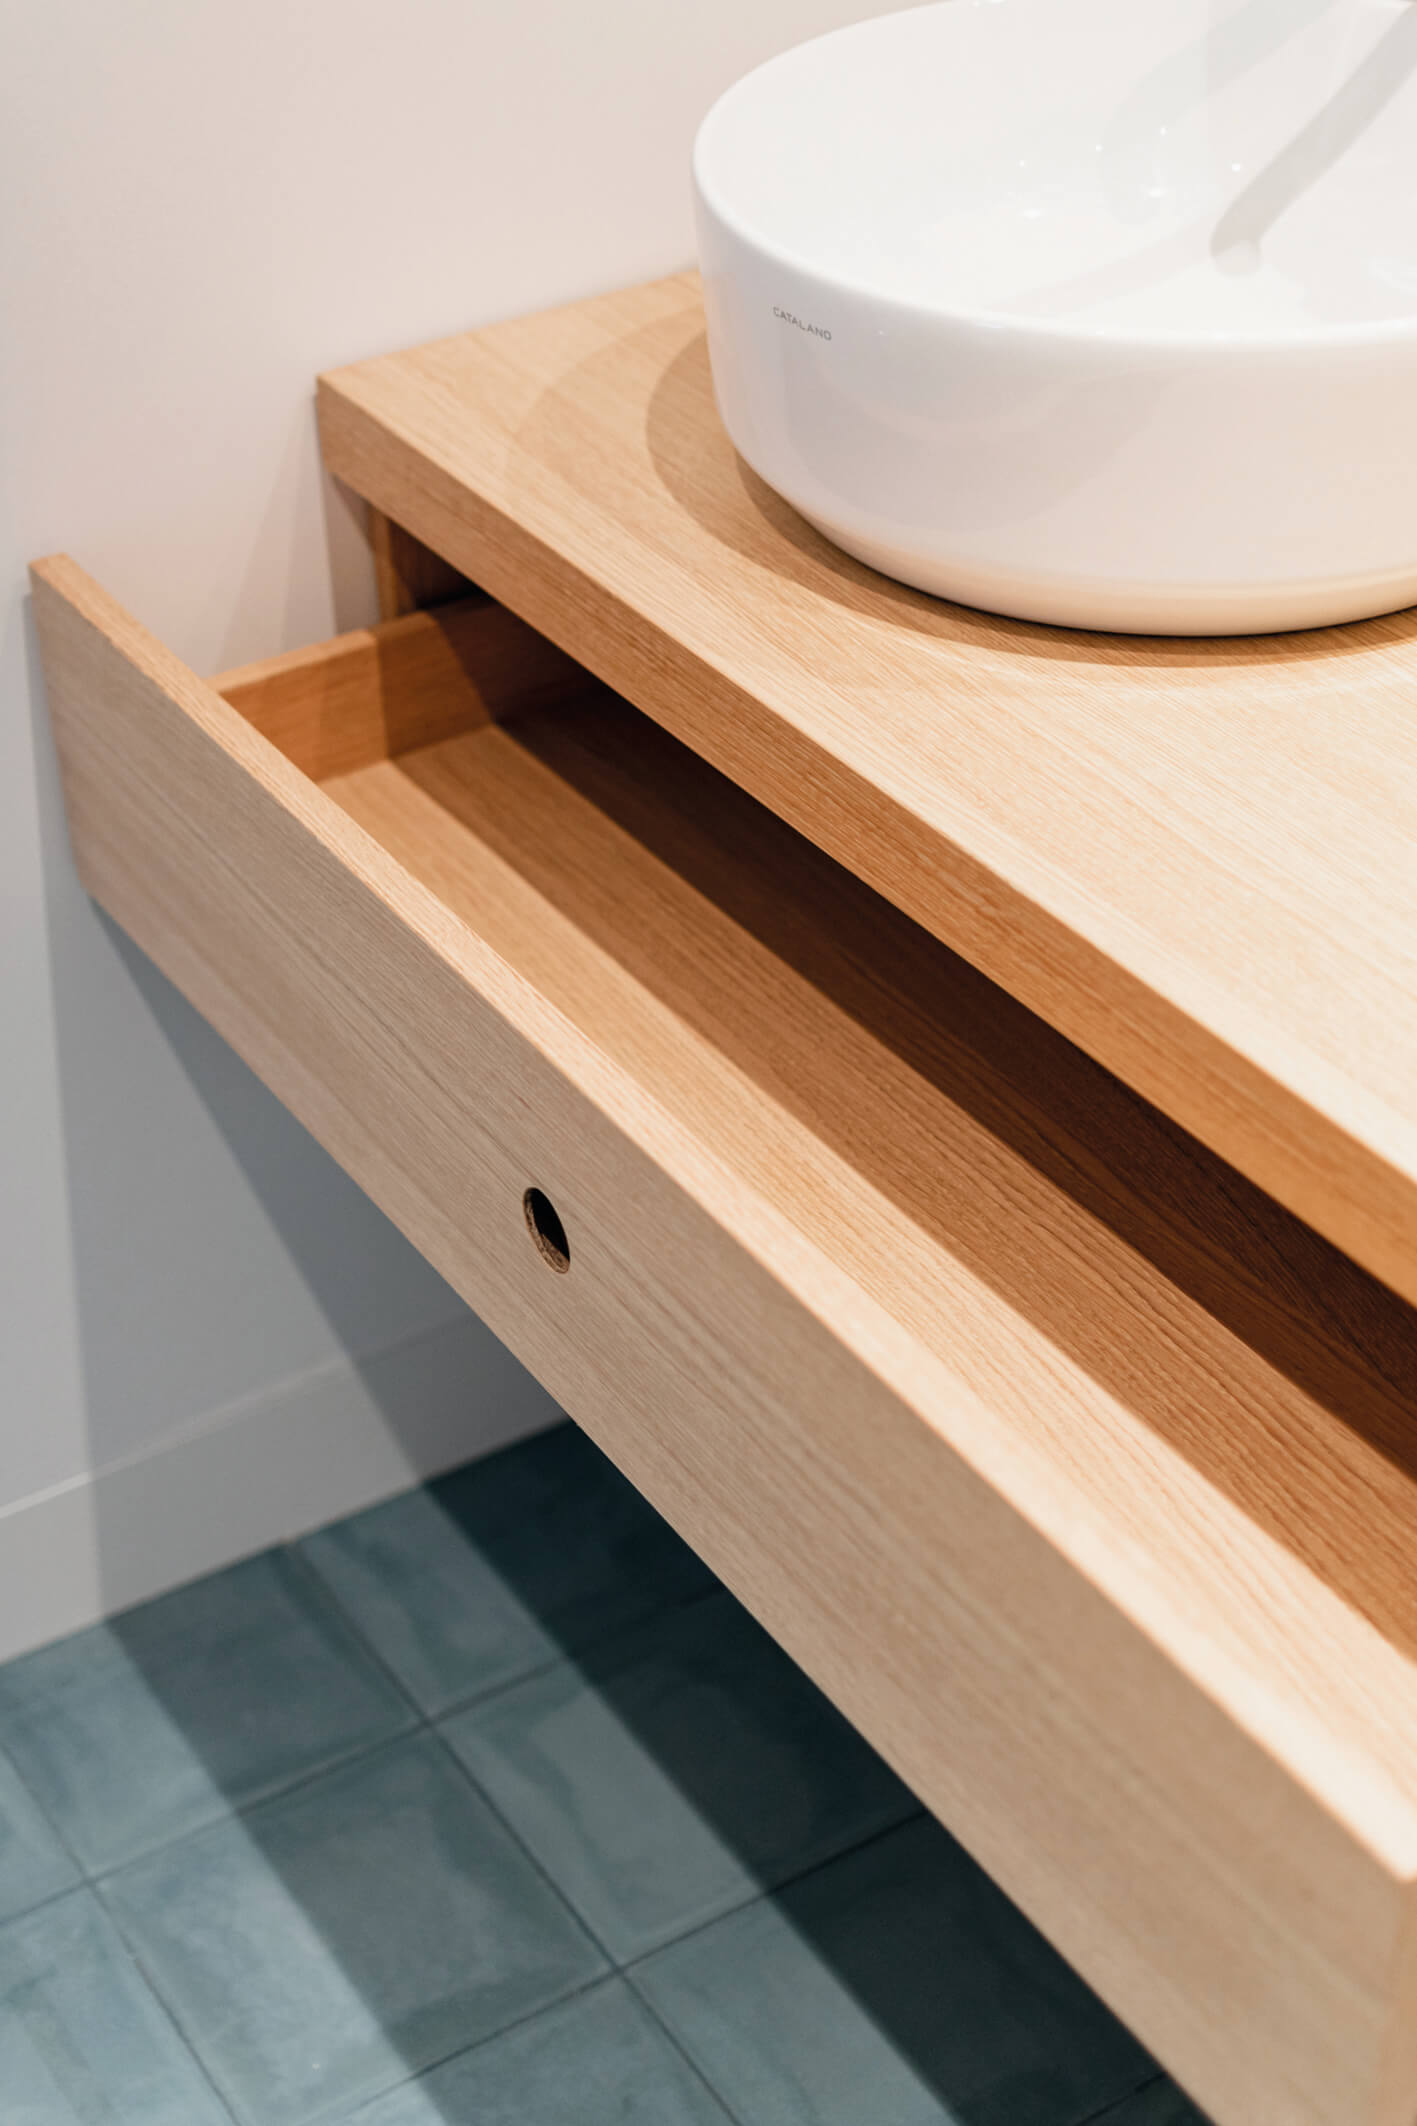 Bathroom sink features sleek drawer. All wood finished with Rubio Monocoat.